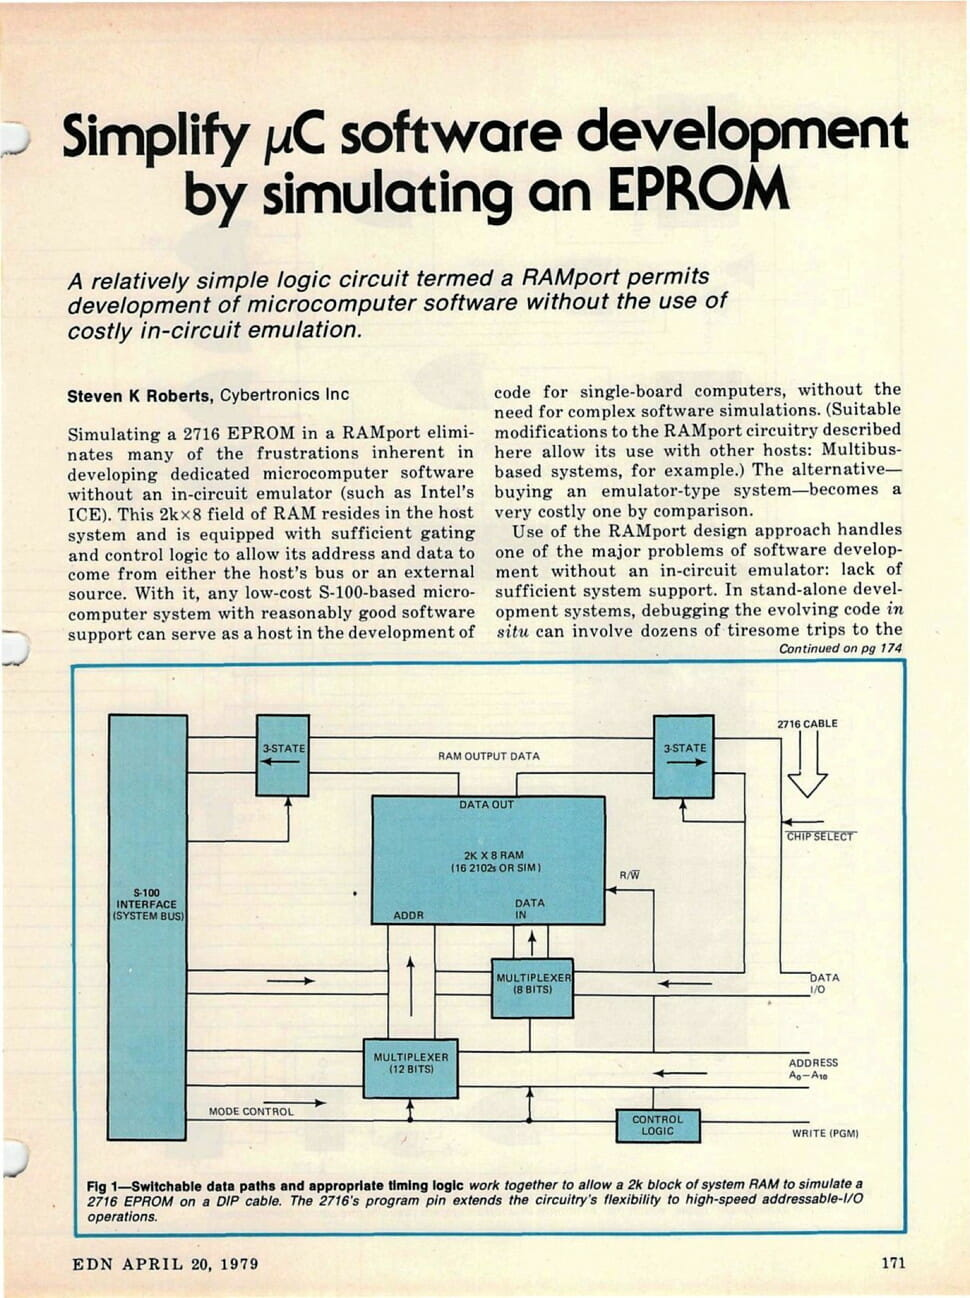 Simplify Microcomputer Software Development By Simulating An Eprom Simple Logic Circuit A 2716 In Ramport Eliminates Many Of The Frustrations Inherent Developing Dedicated Without